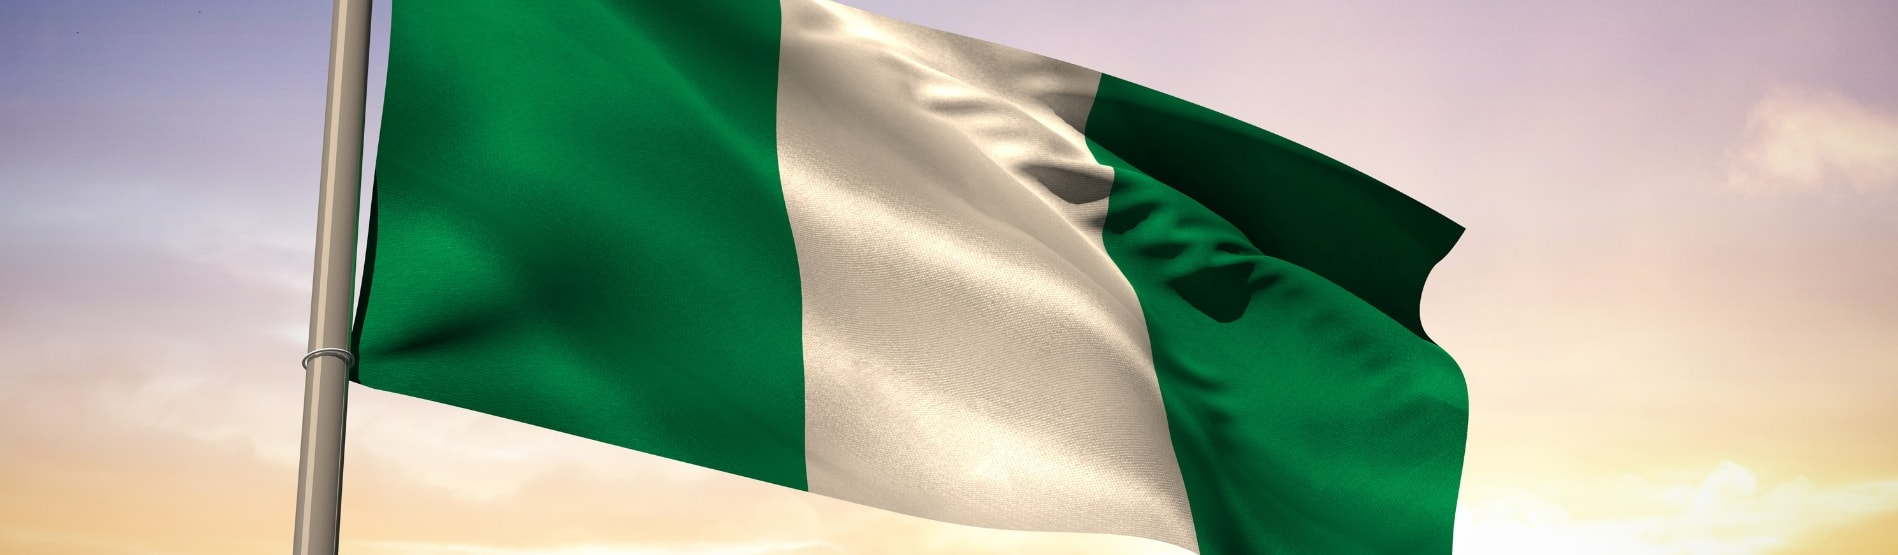 Nigerian Flag blowing in the breeze.